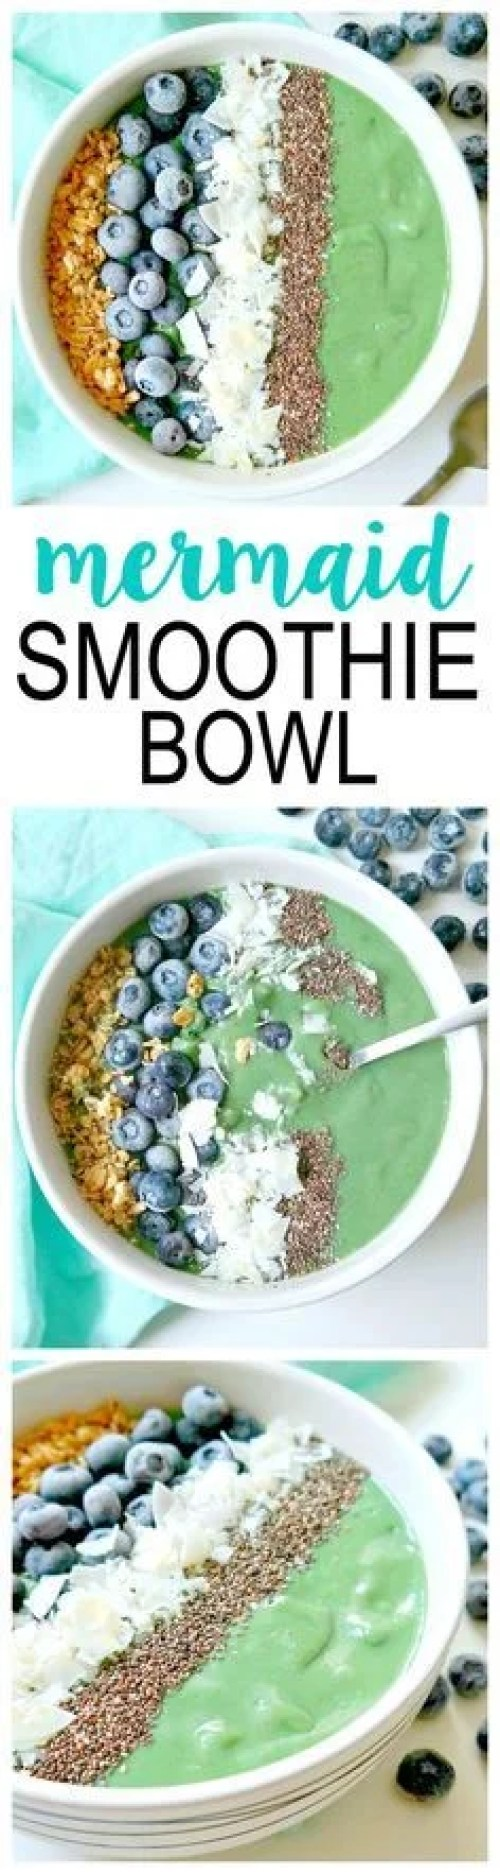 This mermaid smoothie bowl looks SO YUMMY! This is sure to please your tummy and any lucky people you decide to share it with!